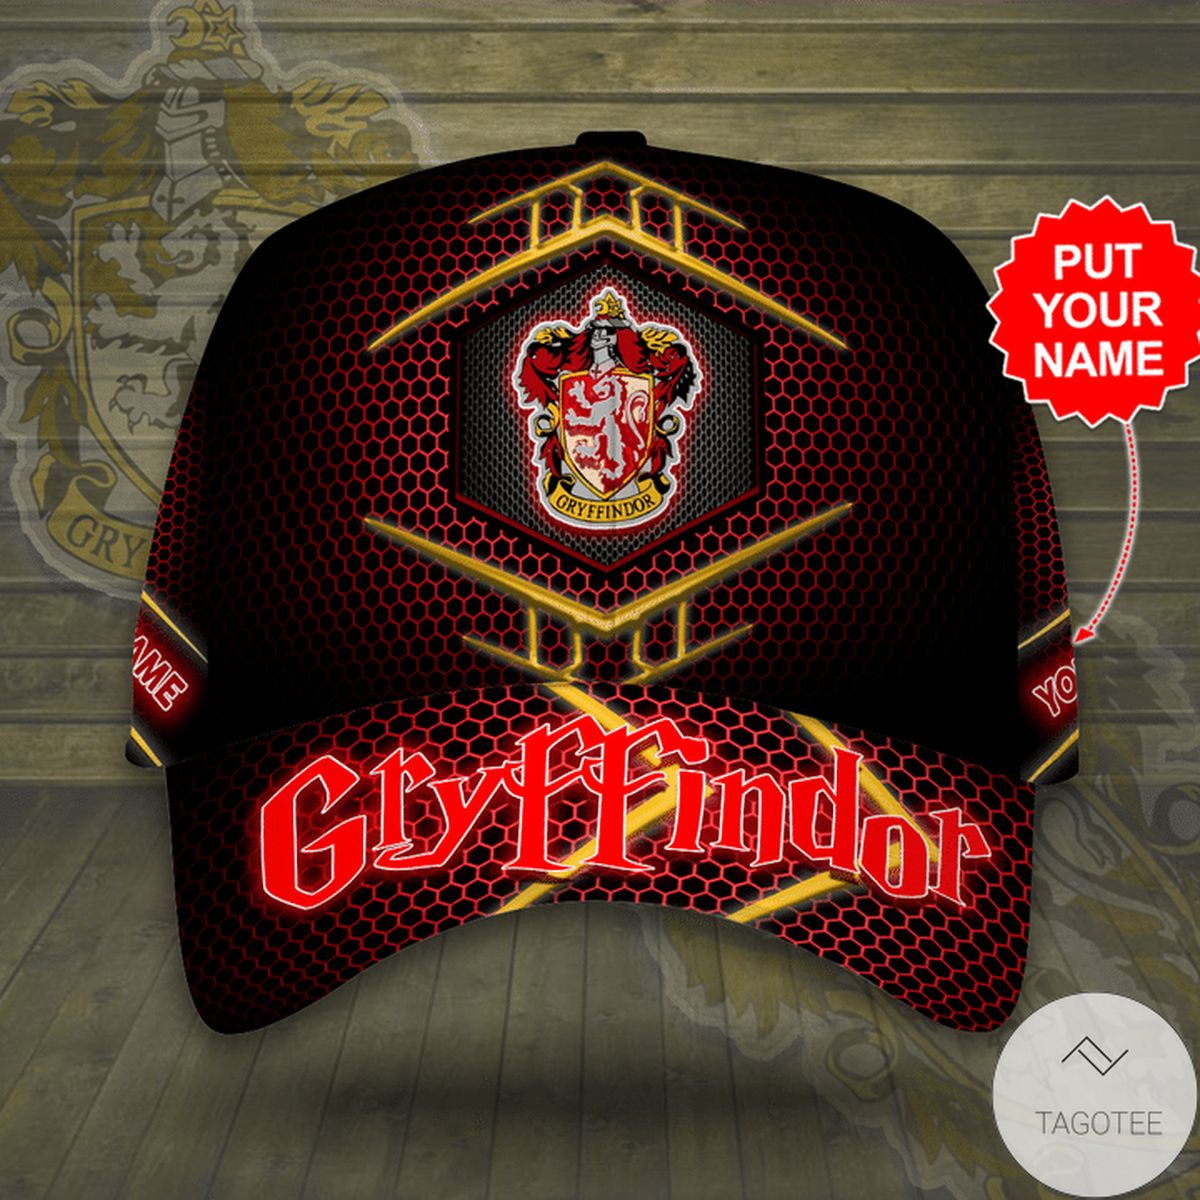 Great artwork! Personalized Harry Potter Gryffindor Cap